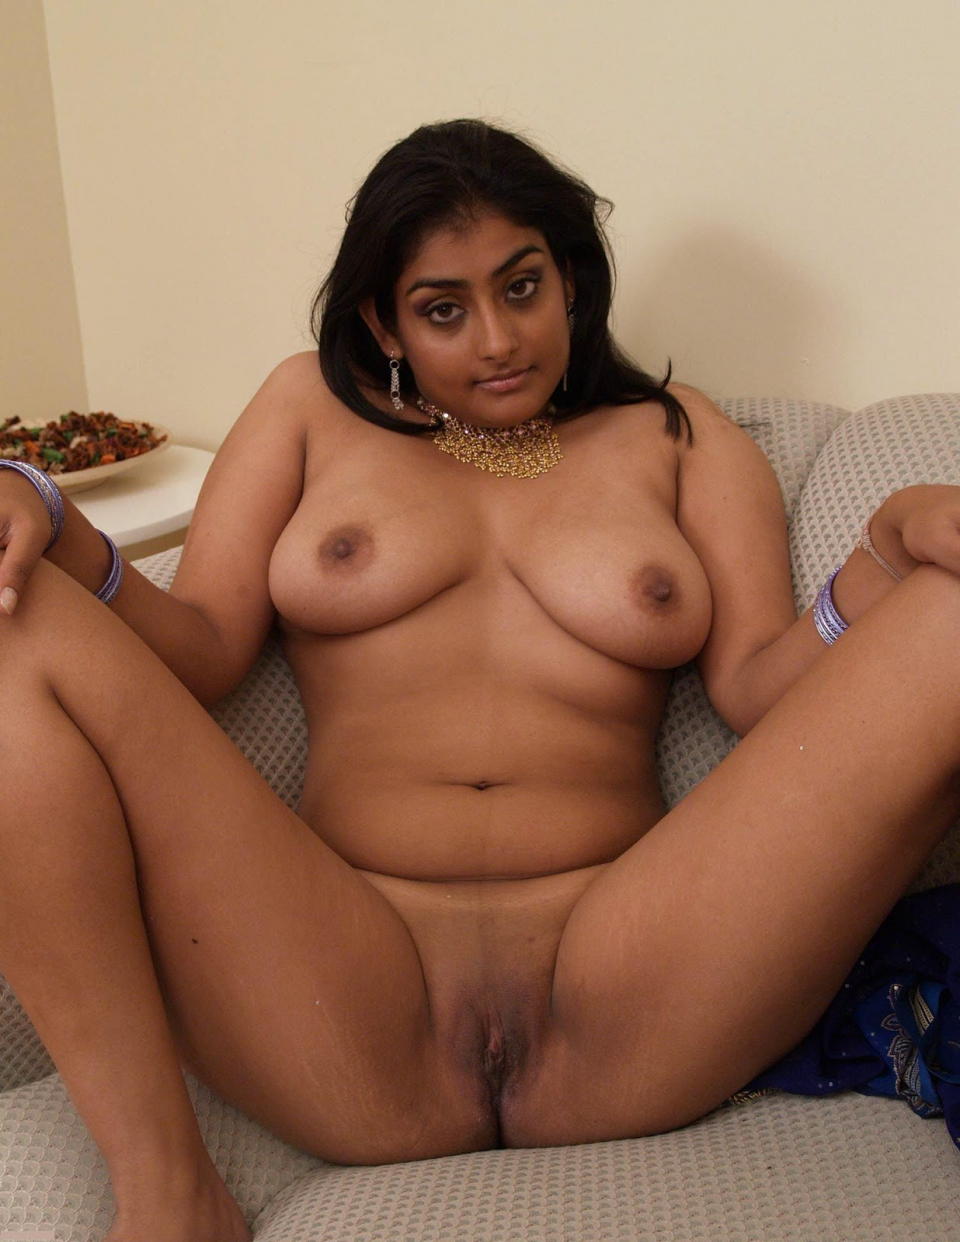 Pic Of Nude Indian Women